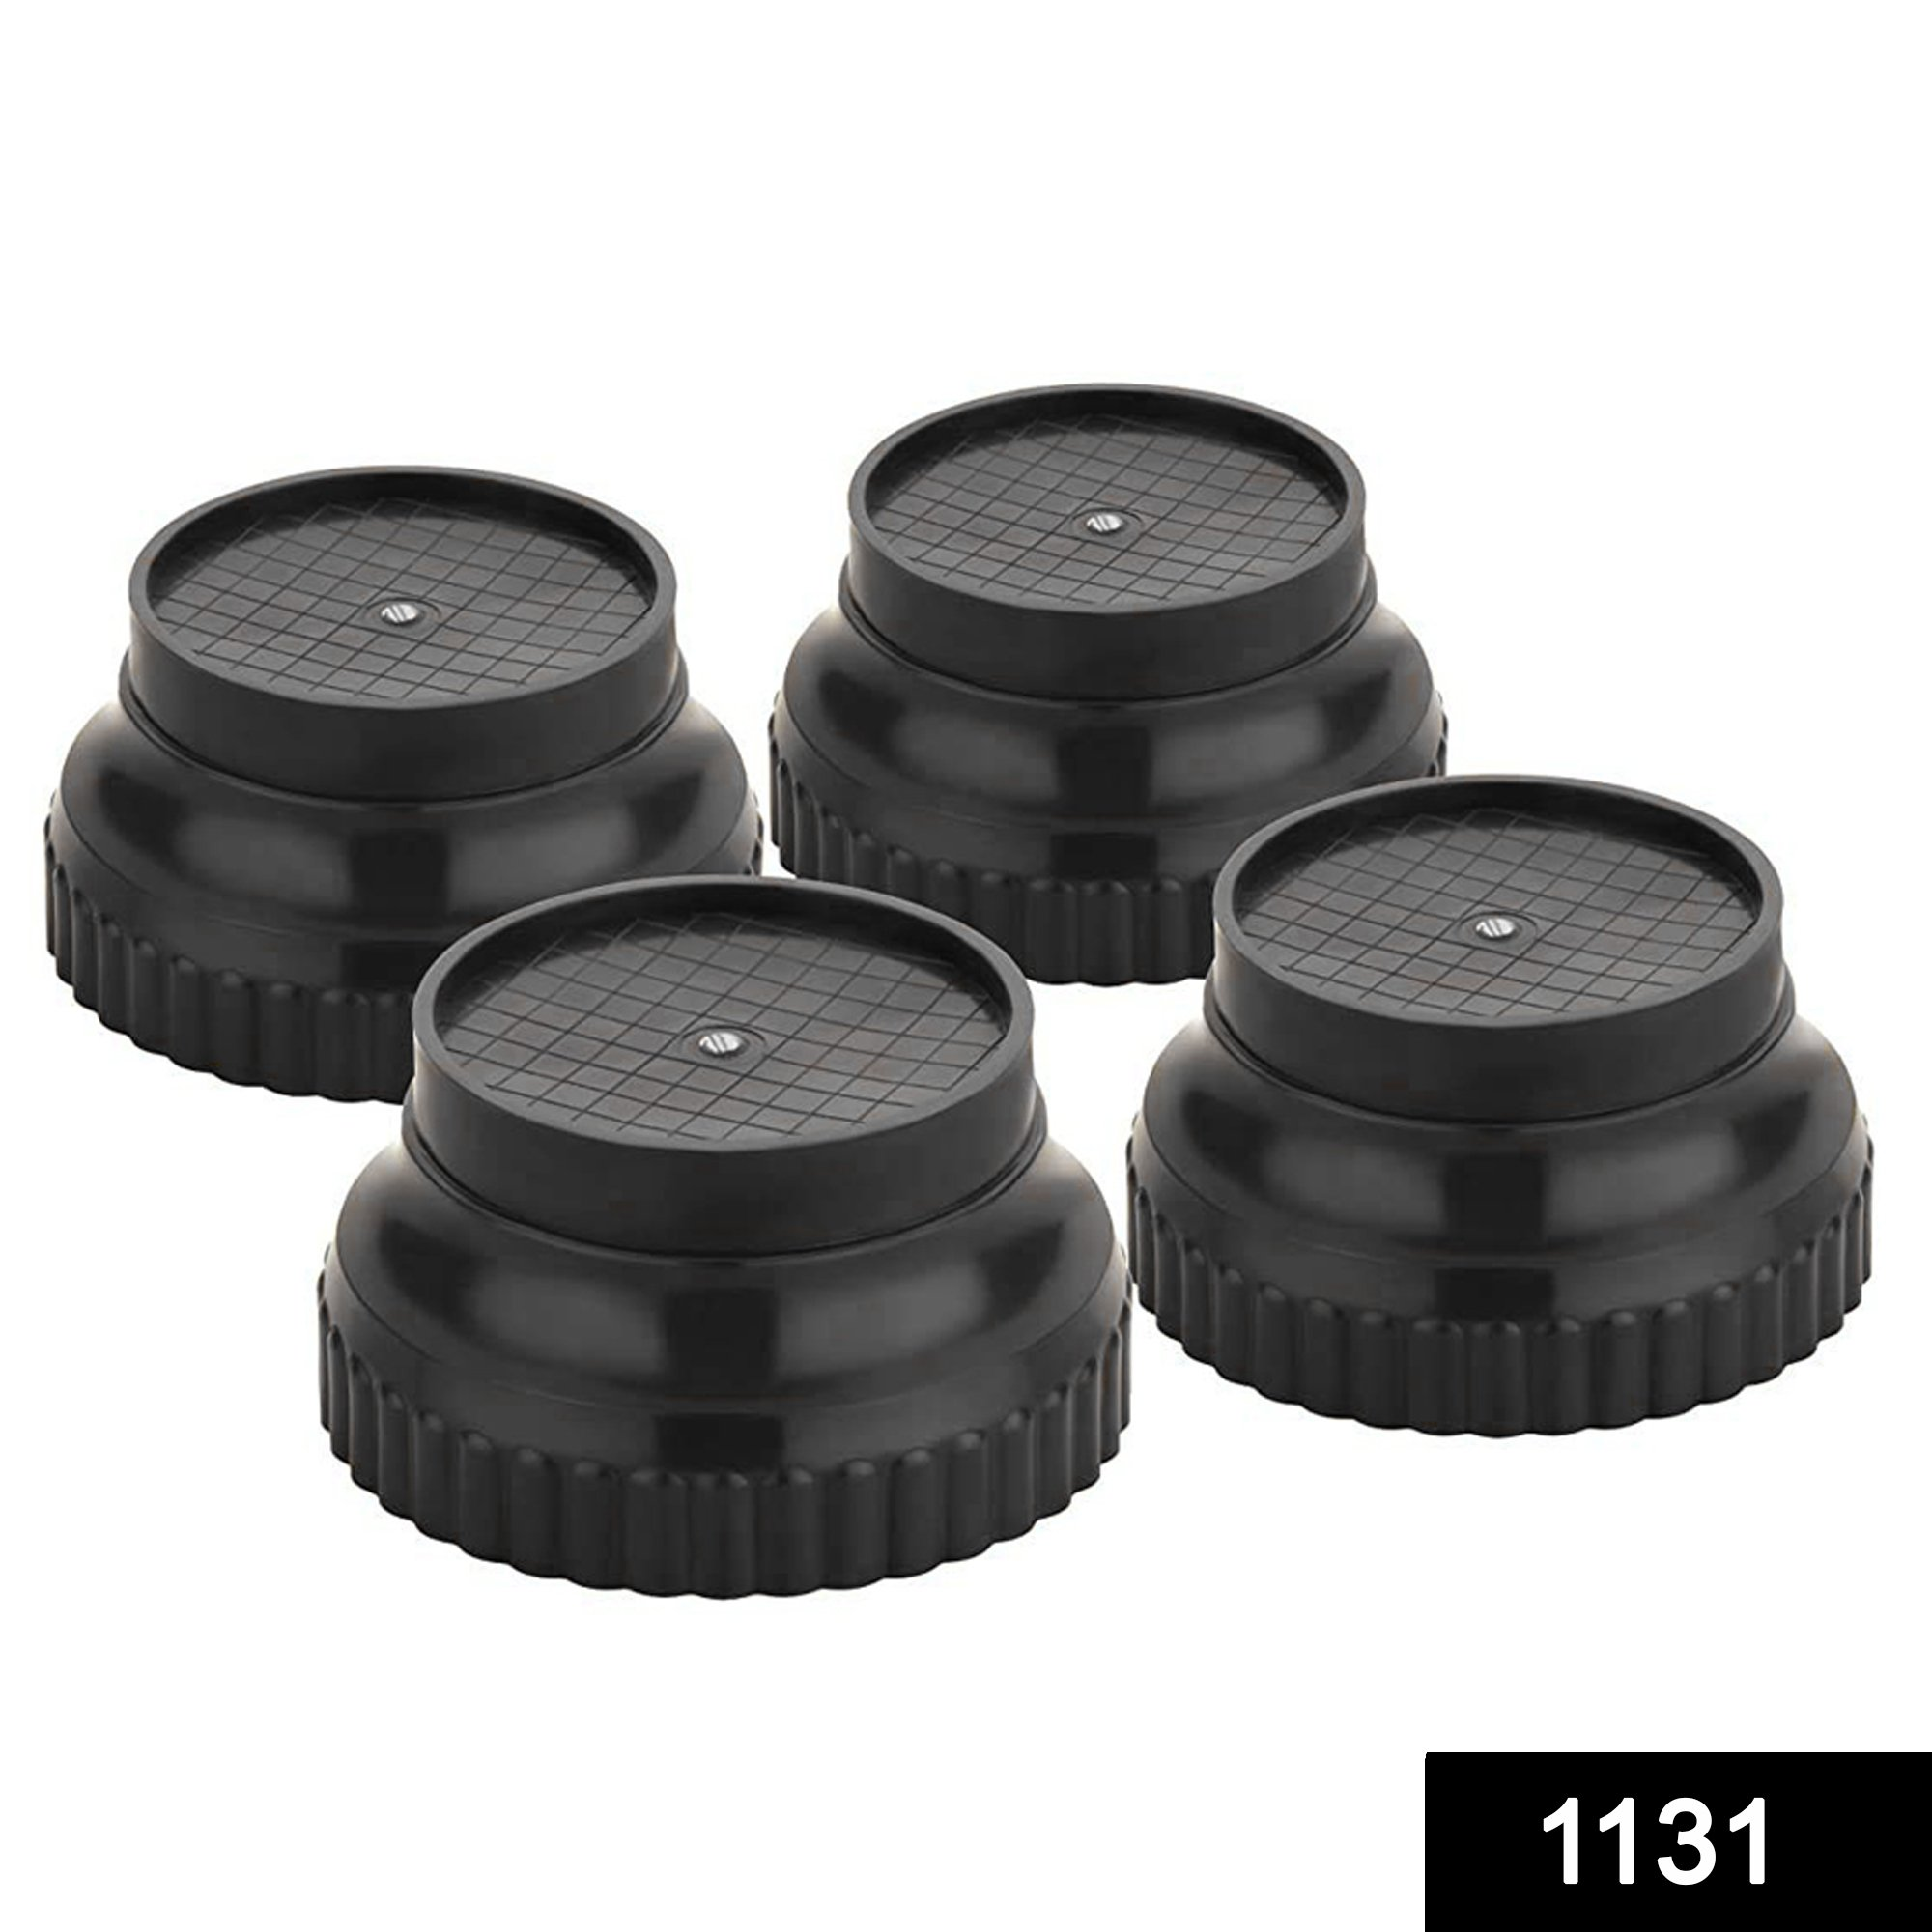 1131 Multi-Purpose 4 Pieces Round Plastic Legs Foot and Stand -